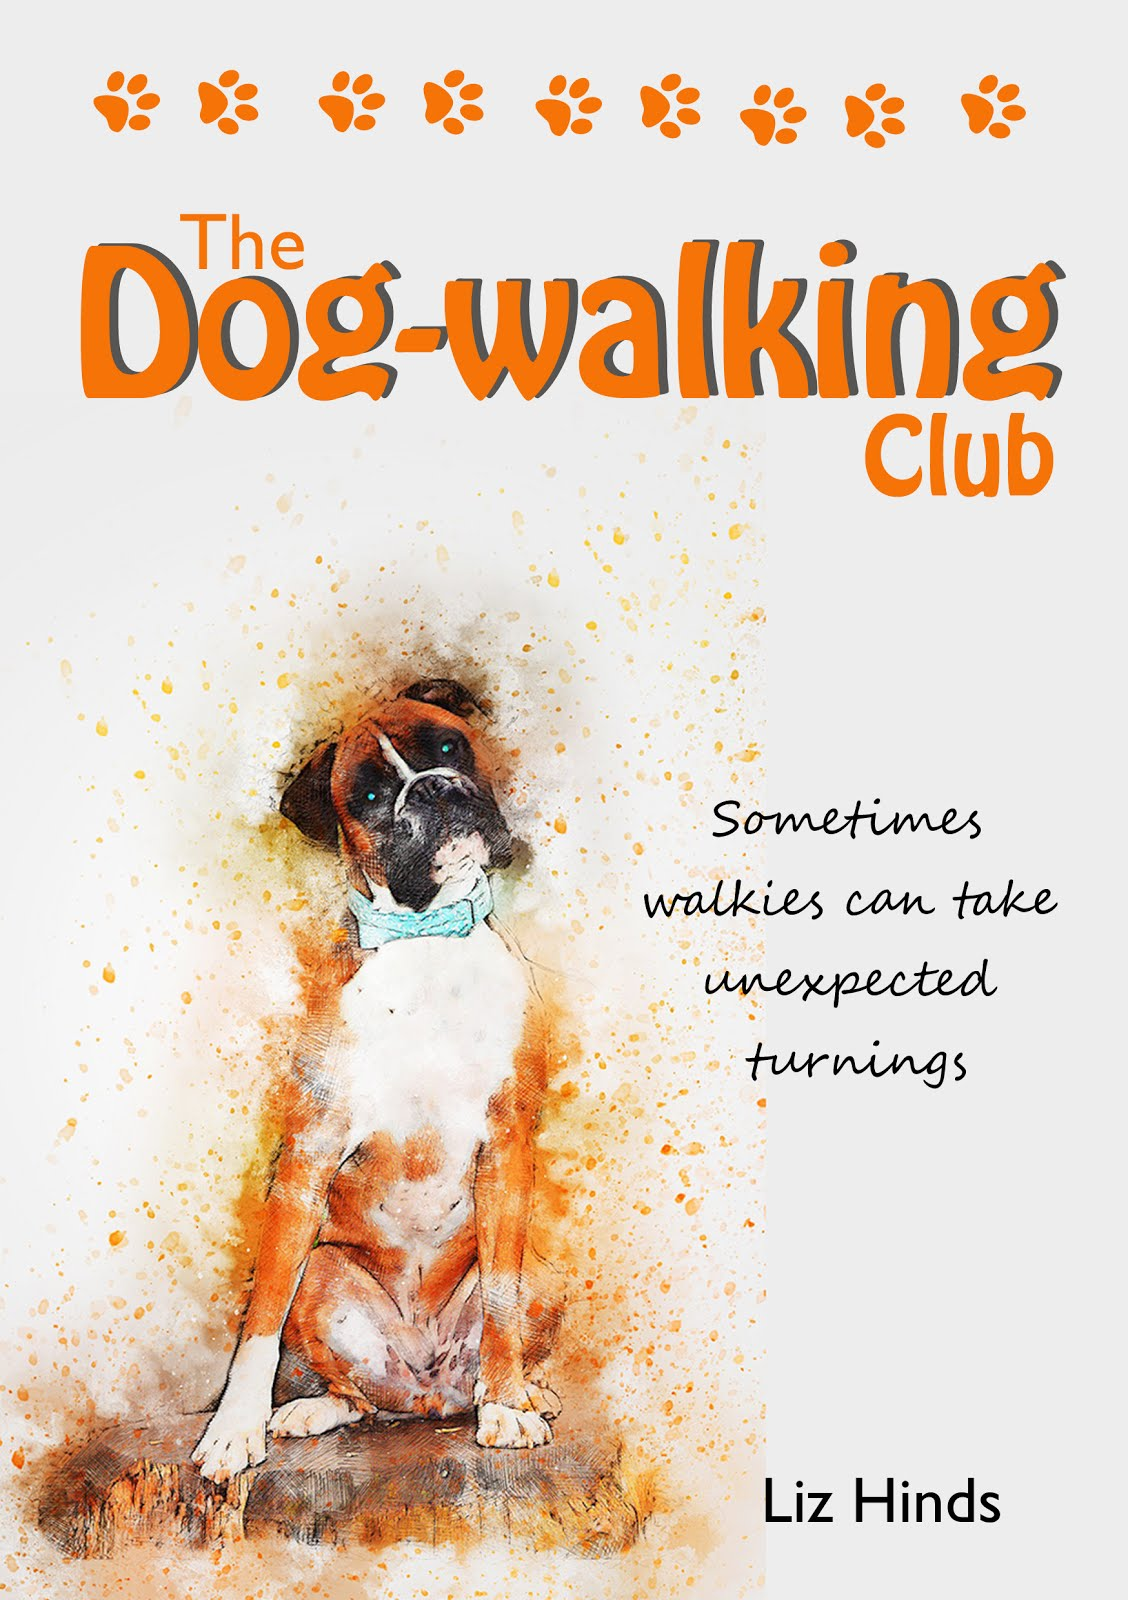 The Dog-walking Club